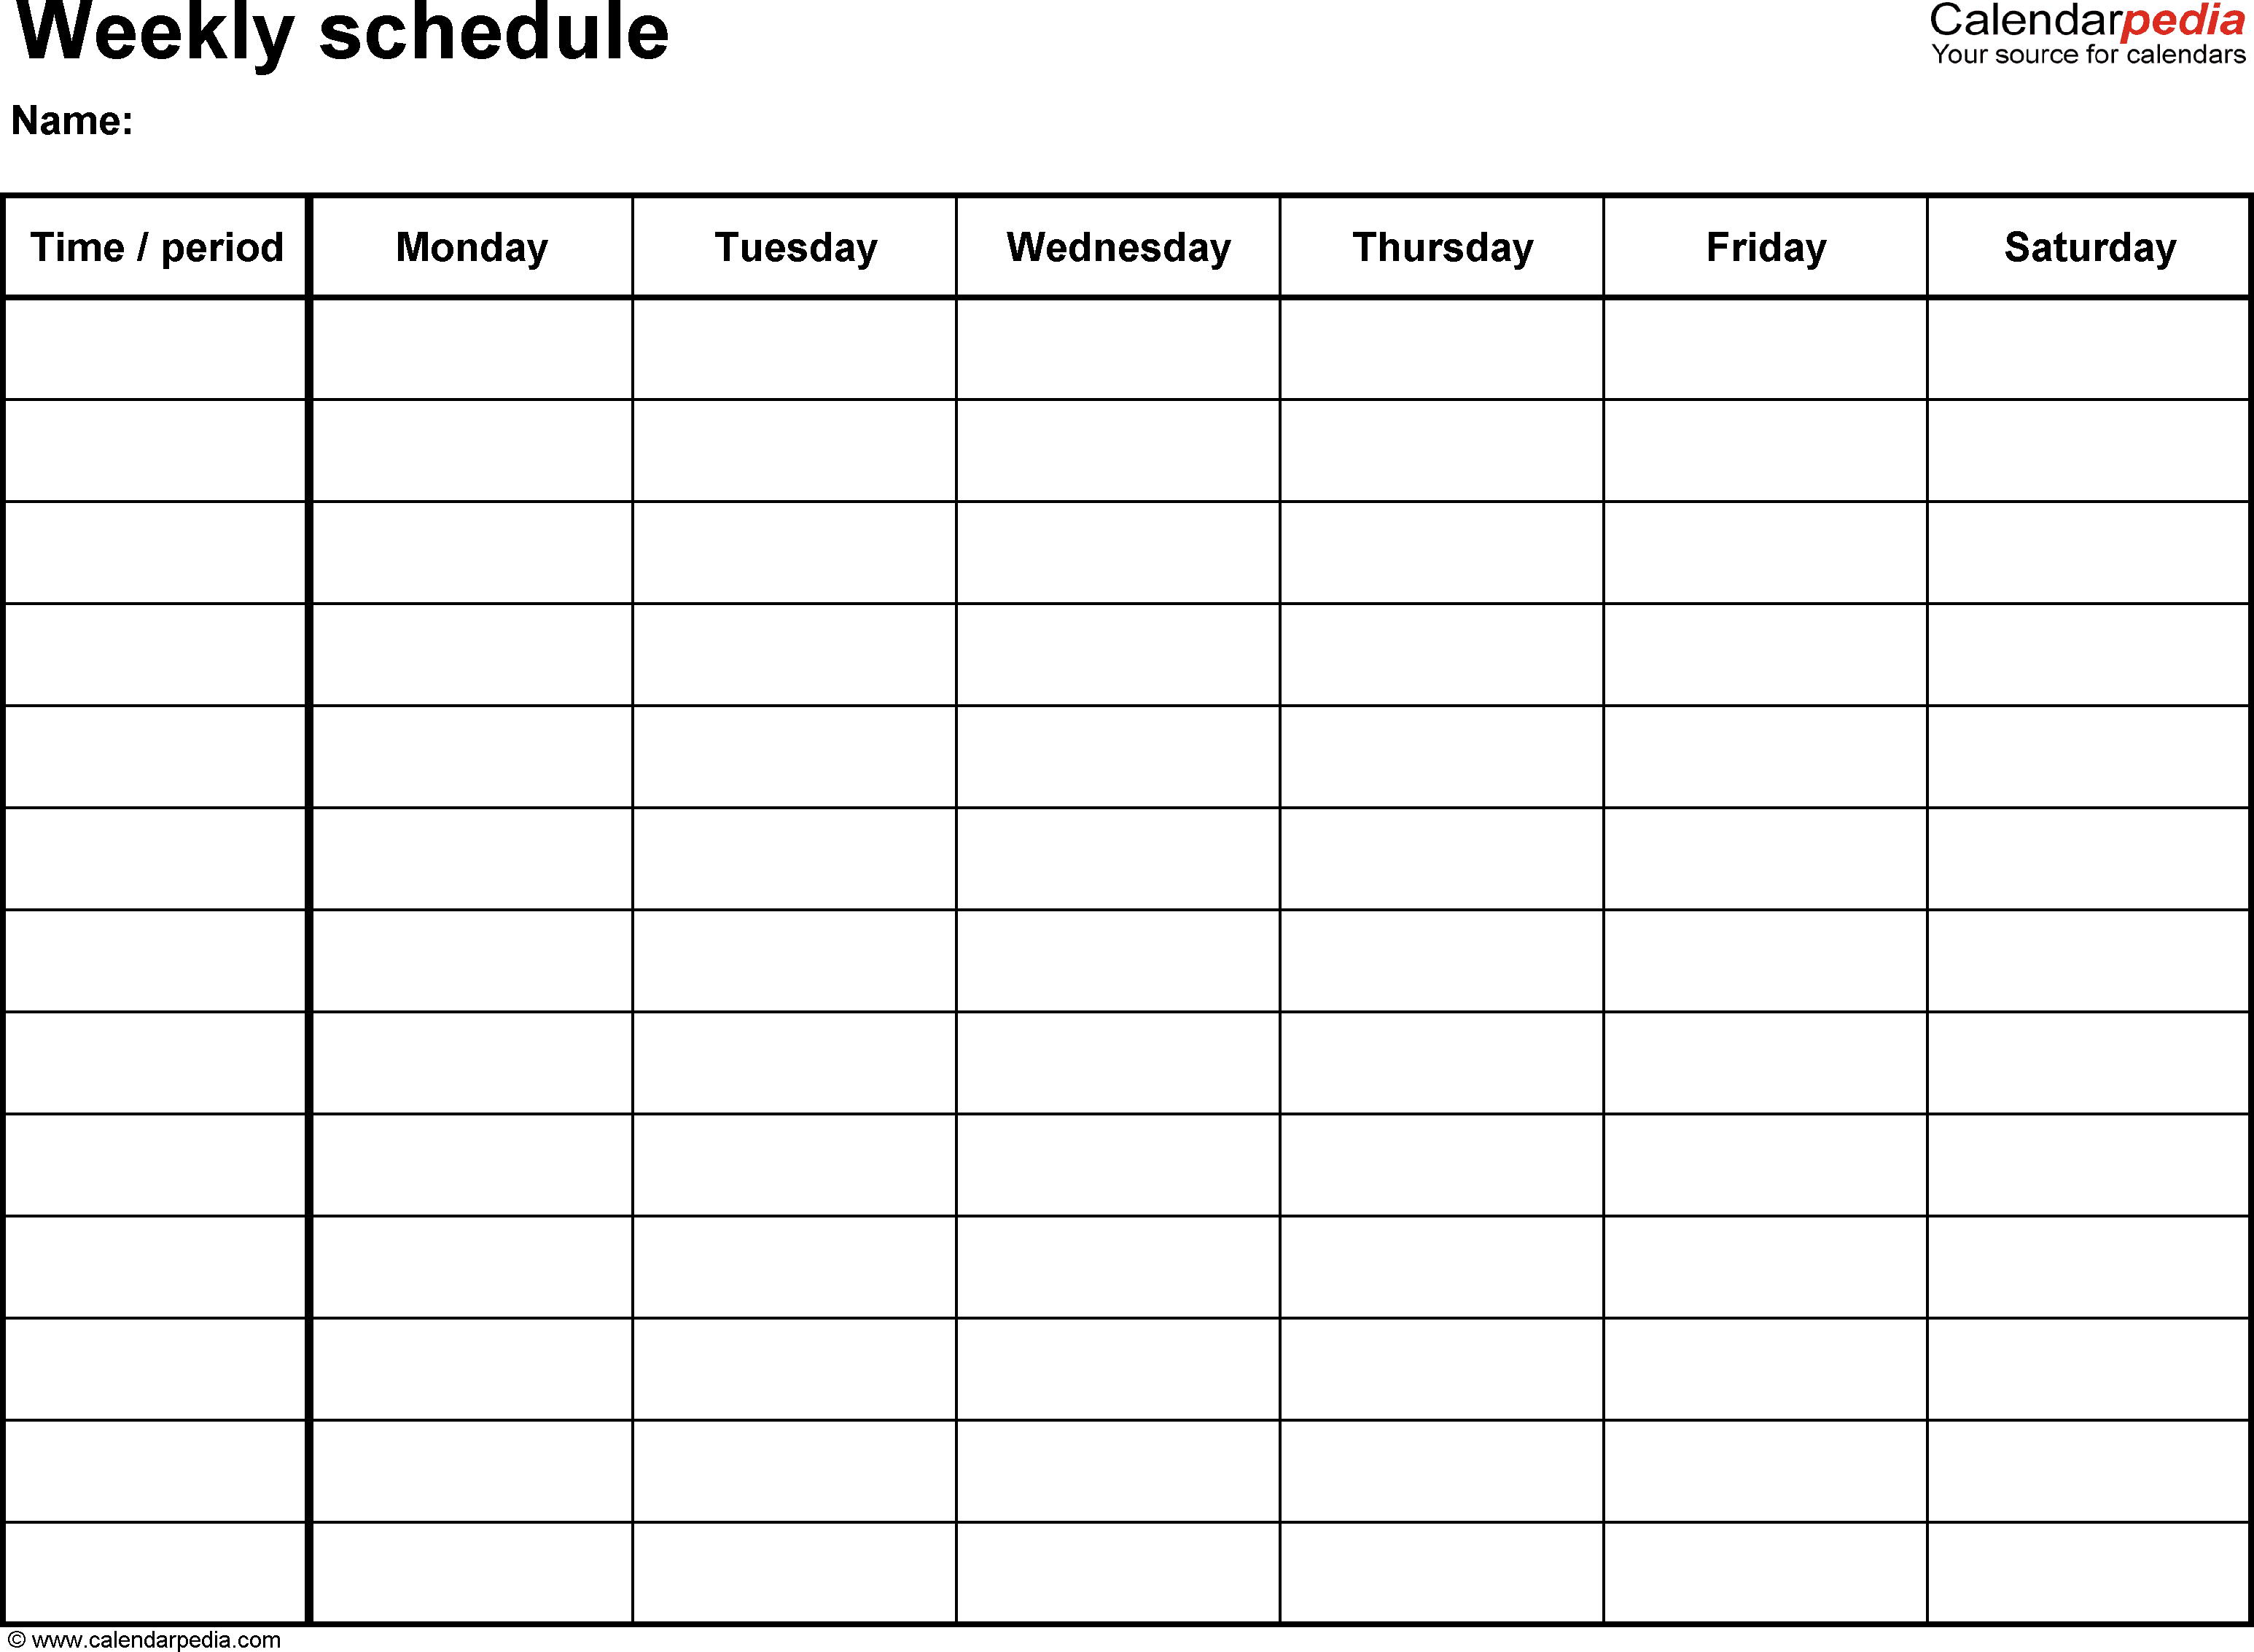 Weekly Schedule Template For Word Version 8: Landscape, 1 Blank 8 Week Calendar Printable